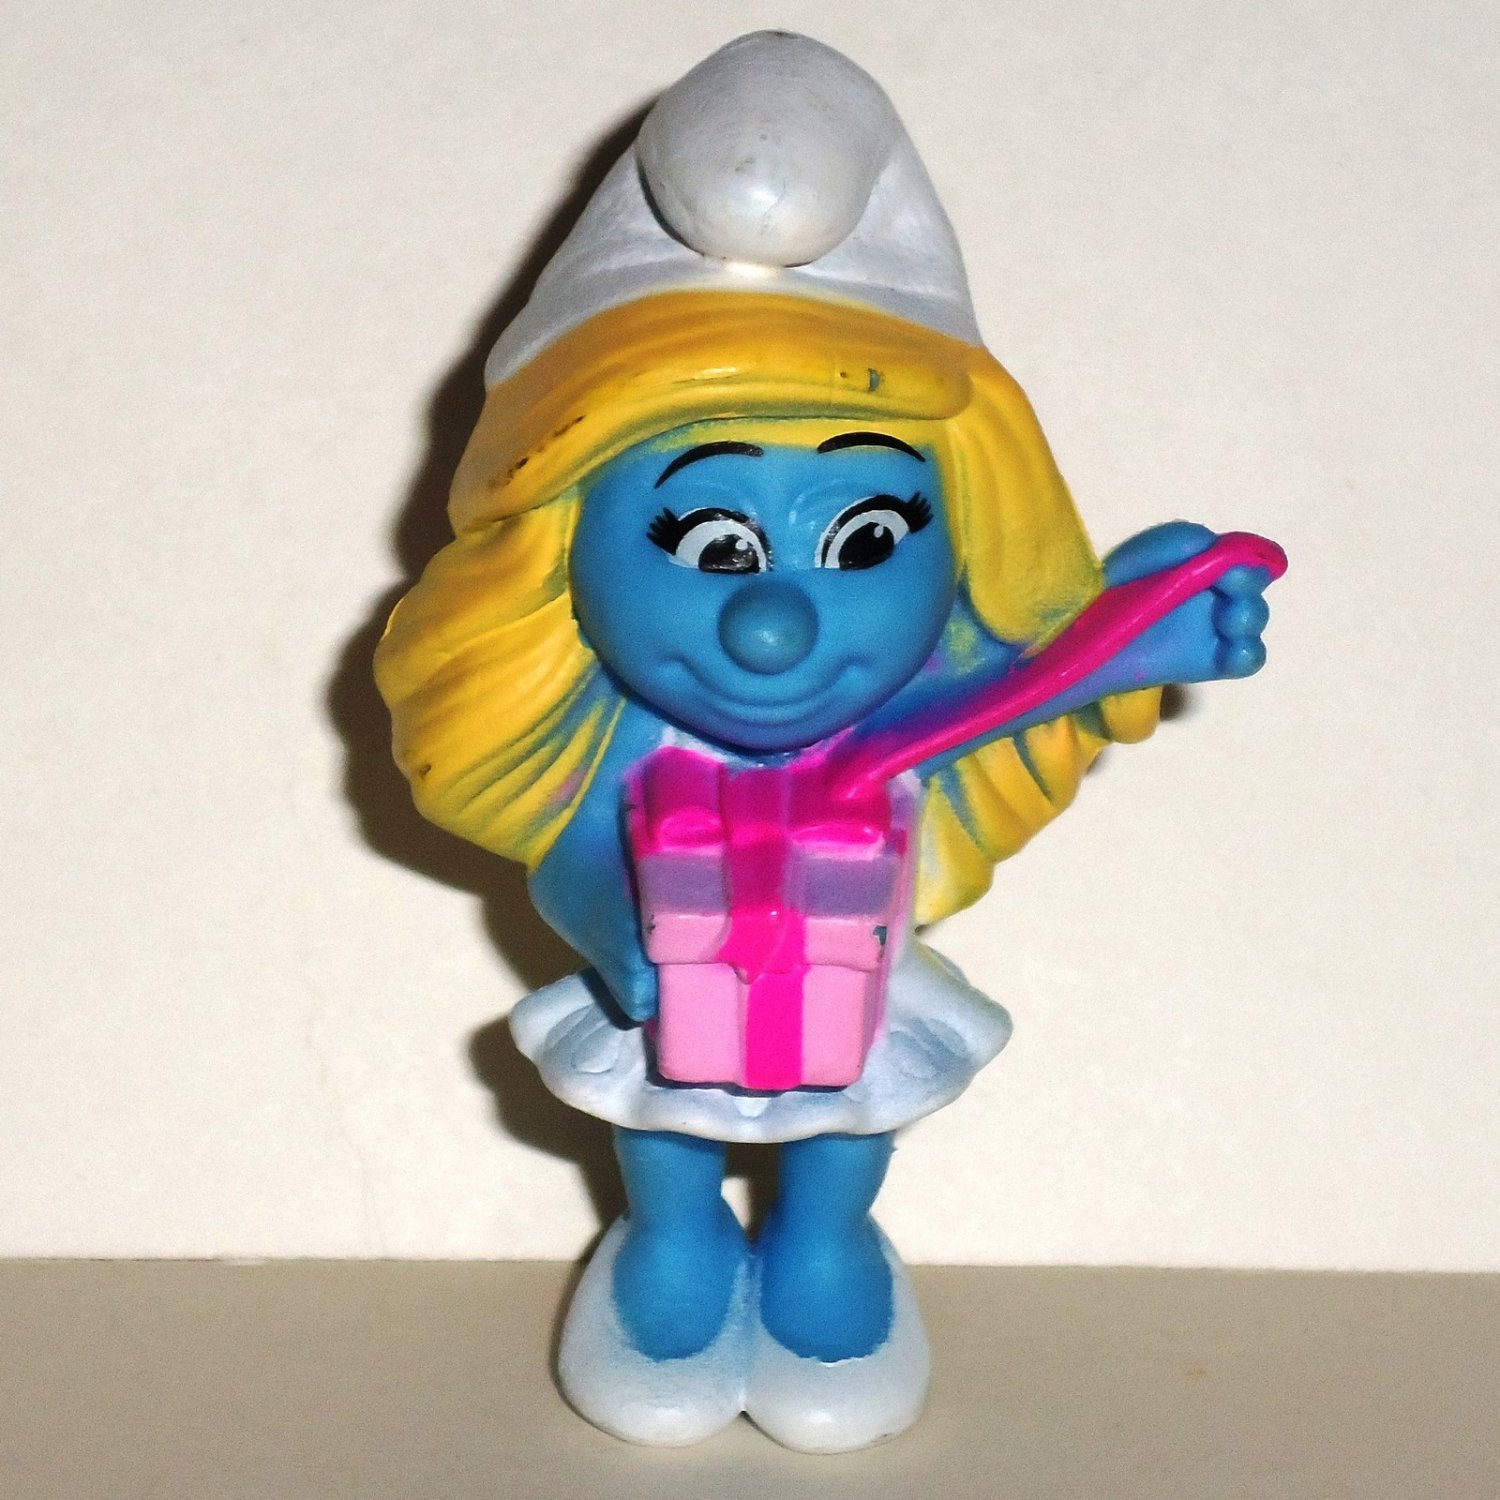 Mcdonald S Happy Meal Toys 2013 : Mcdonald s smurfs smurfette birthday pvc figure